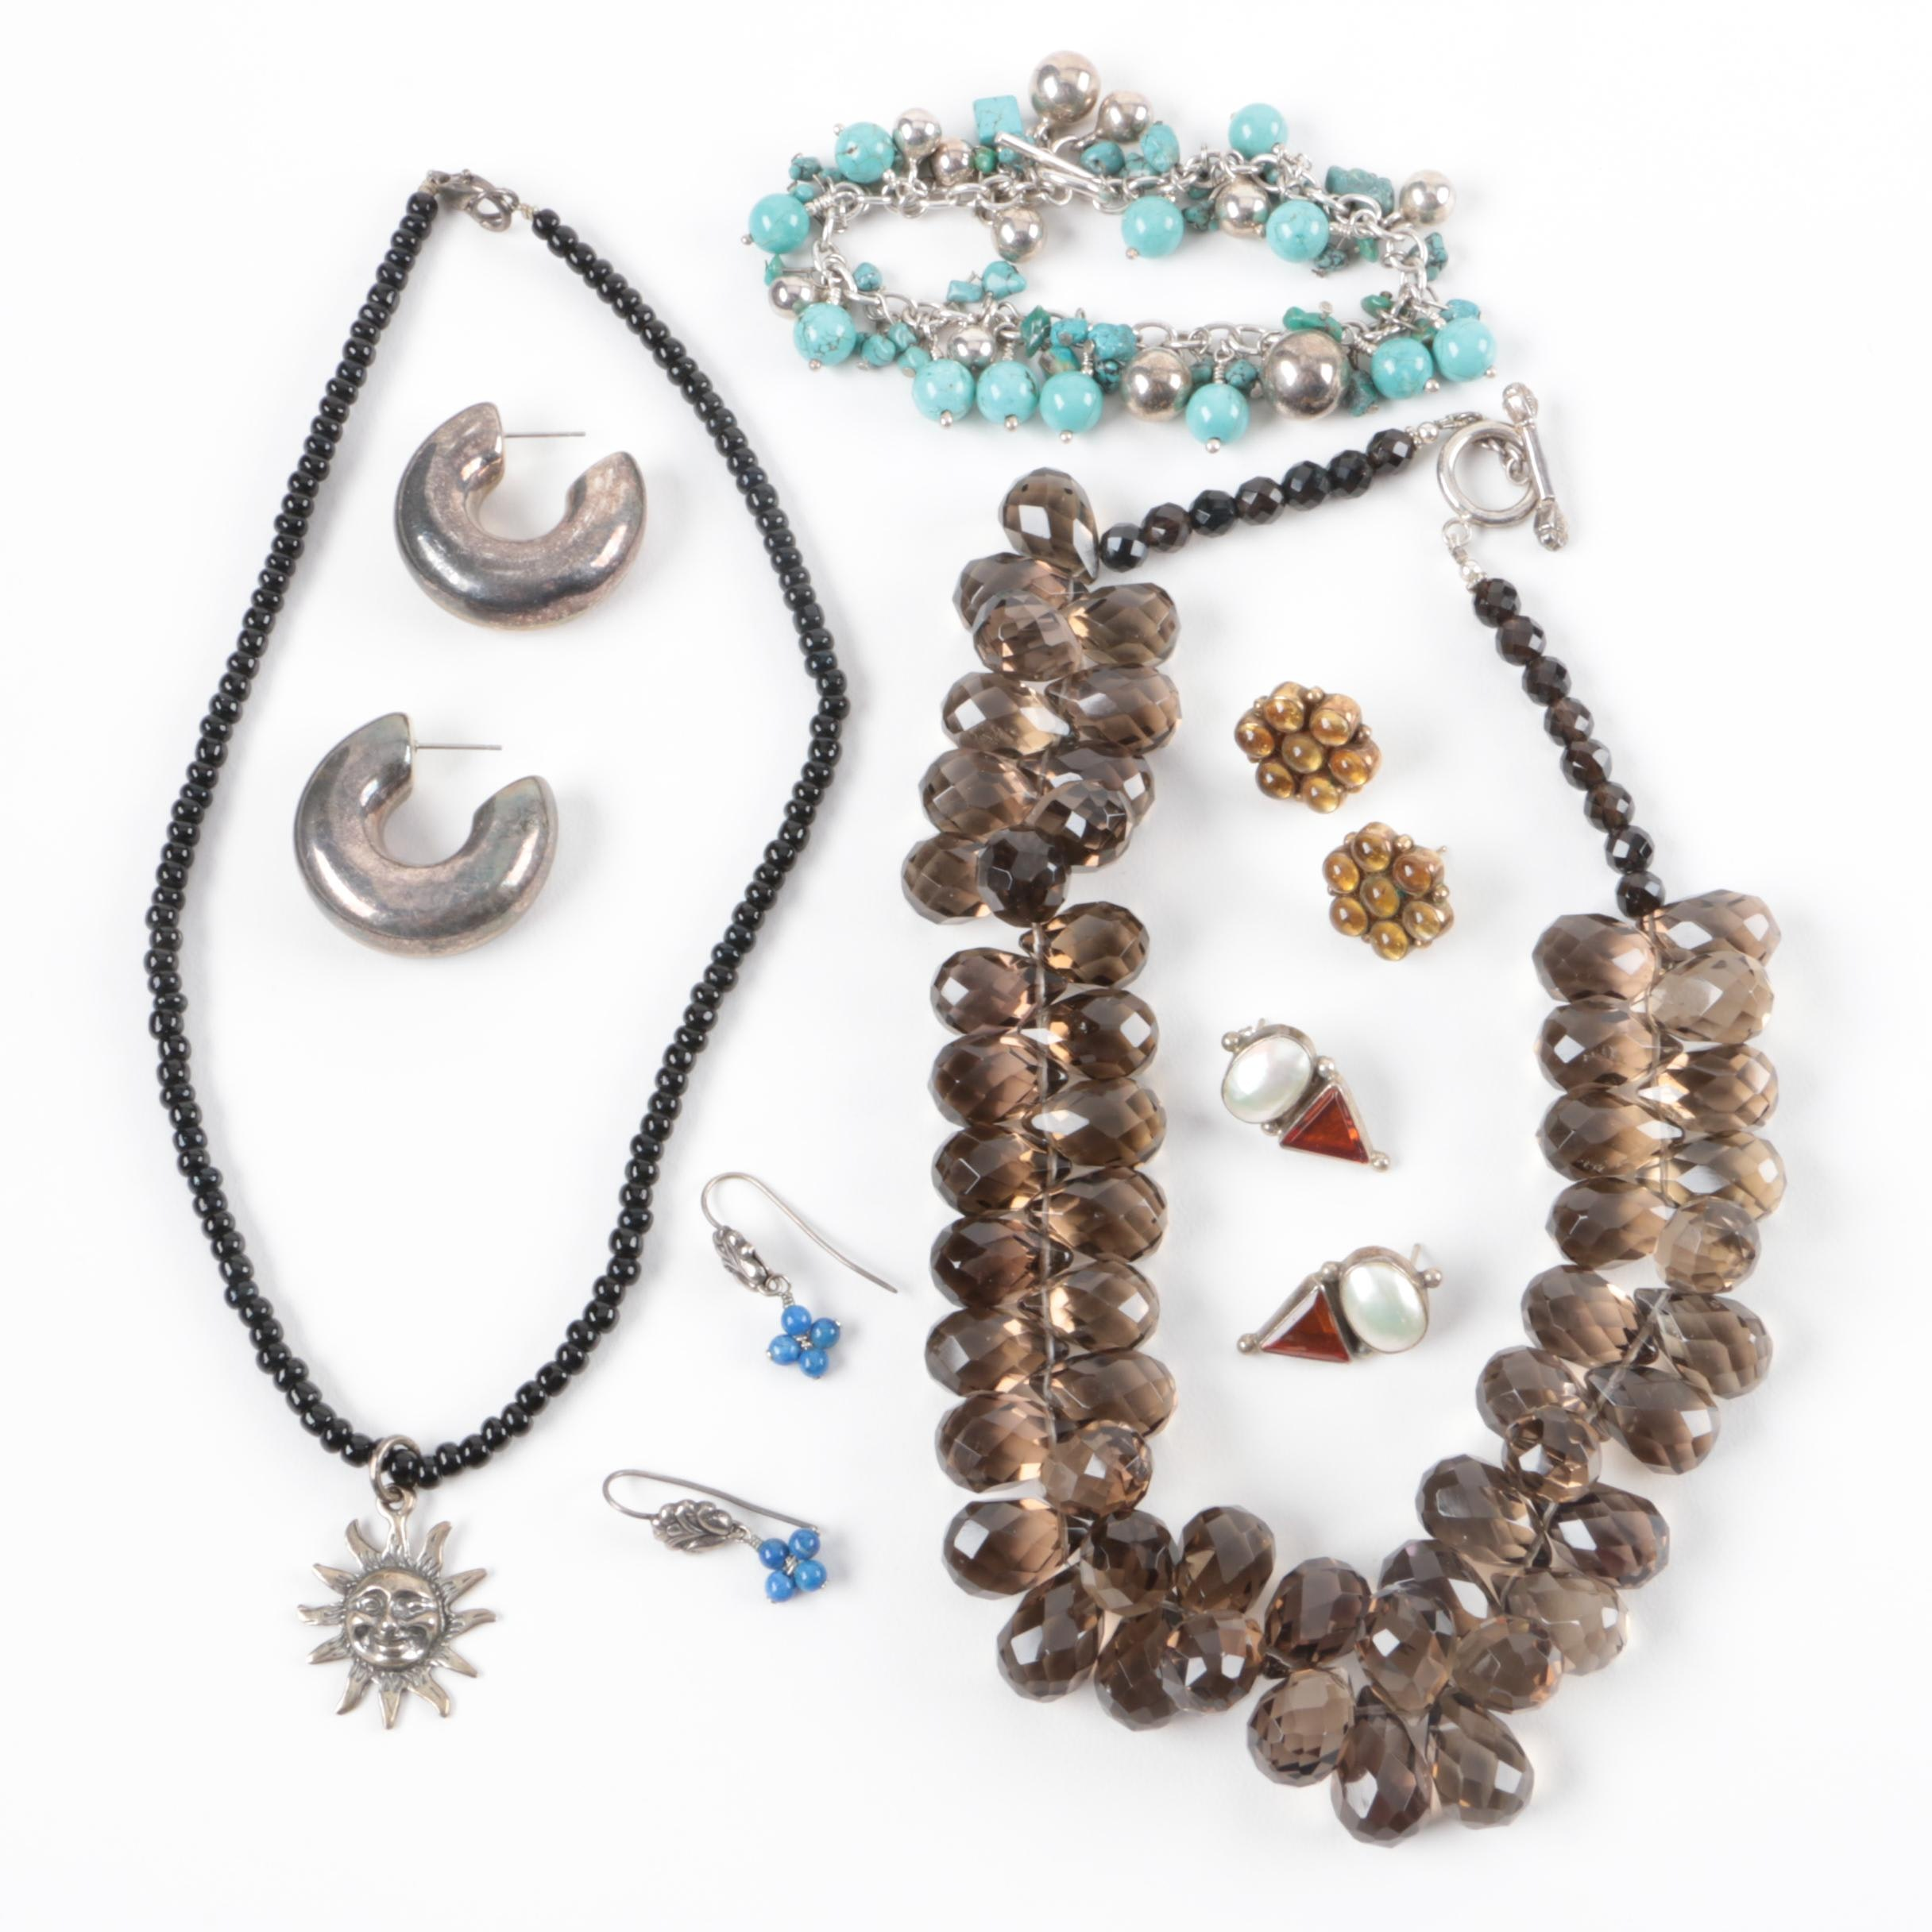 Assorted Costume Jewelry including Necklaces, Bracelets and Earrings